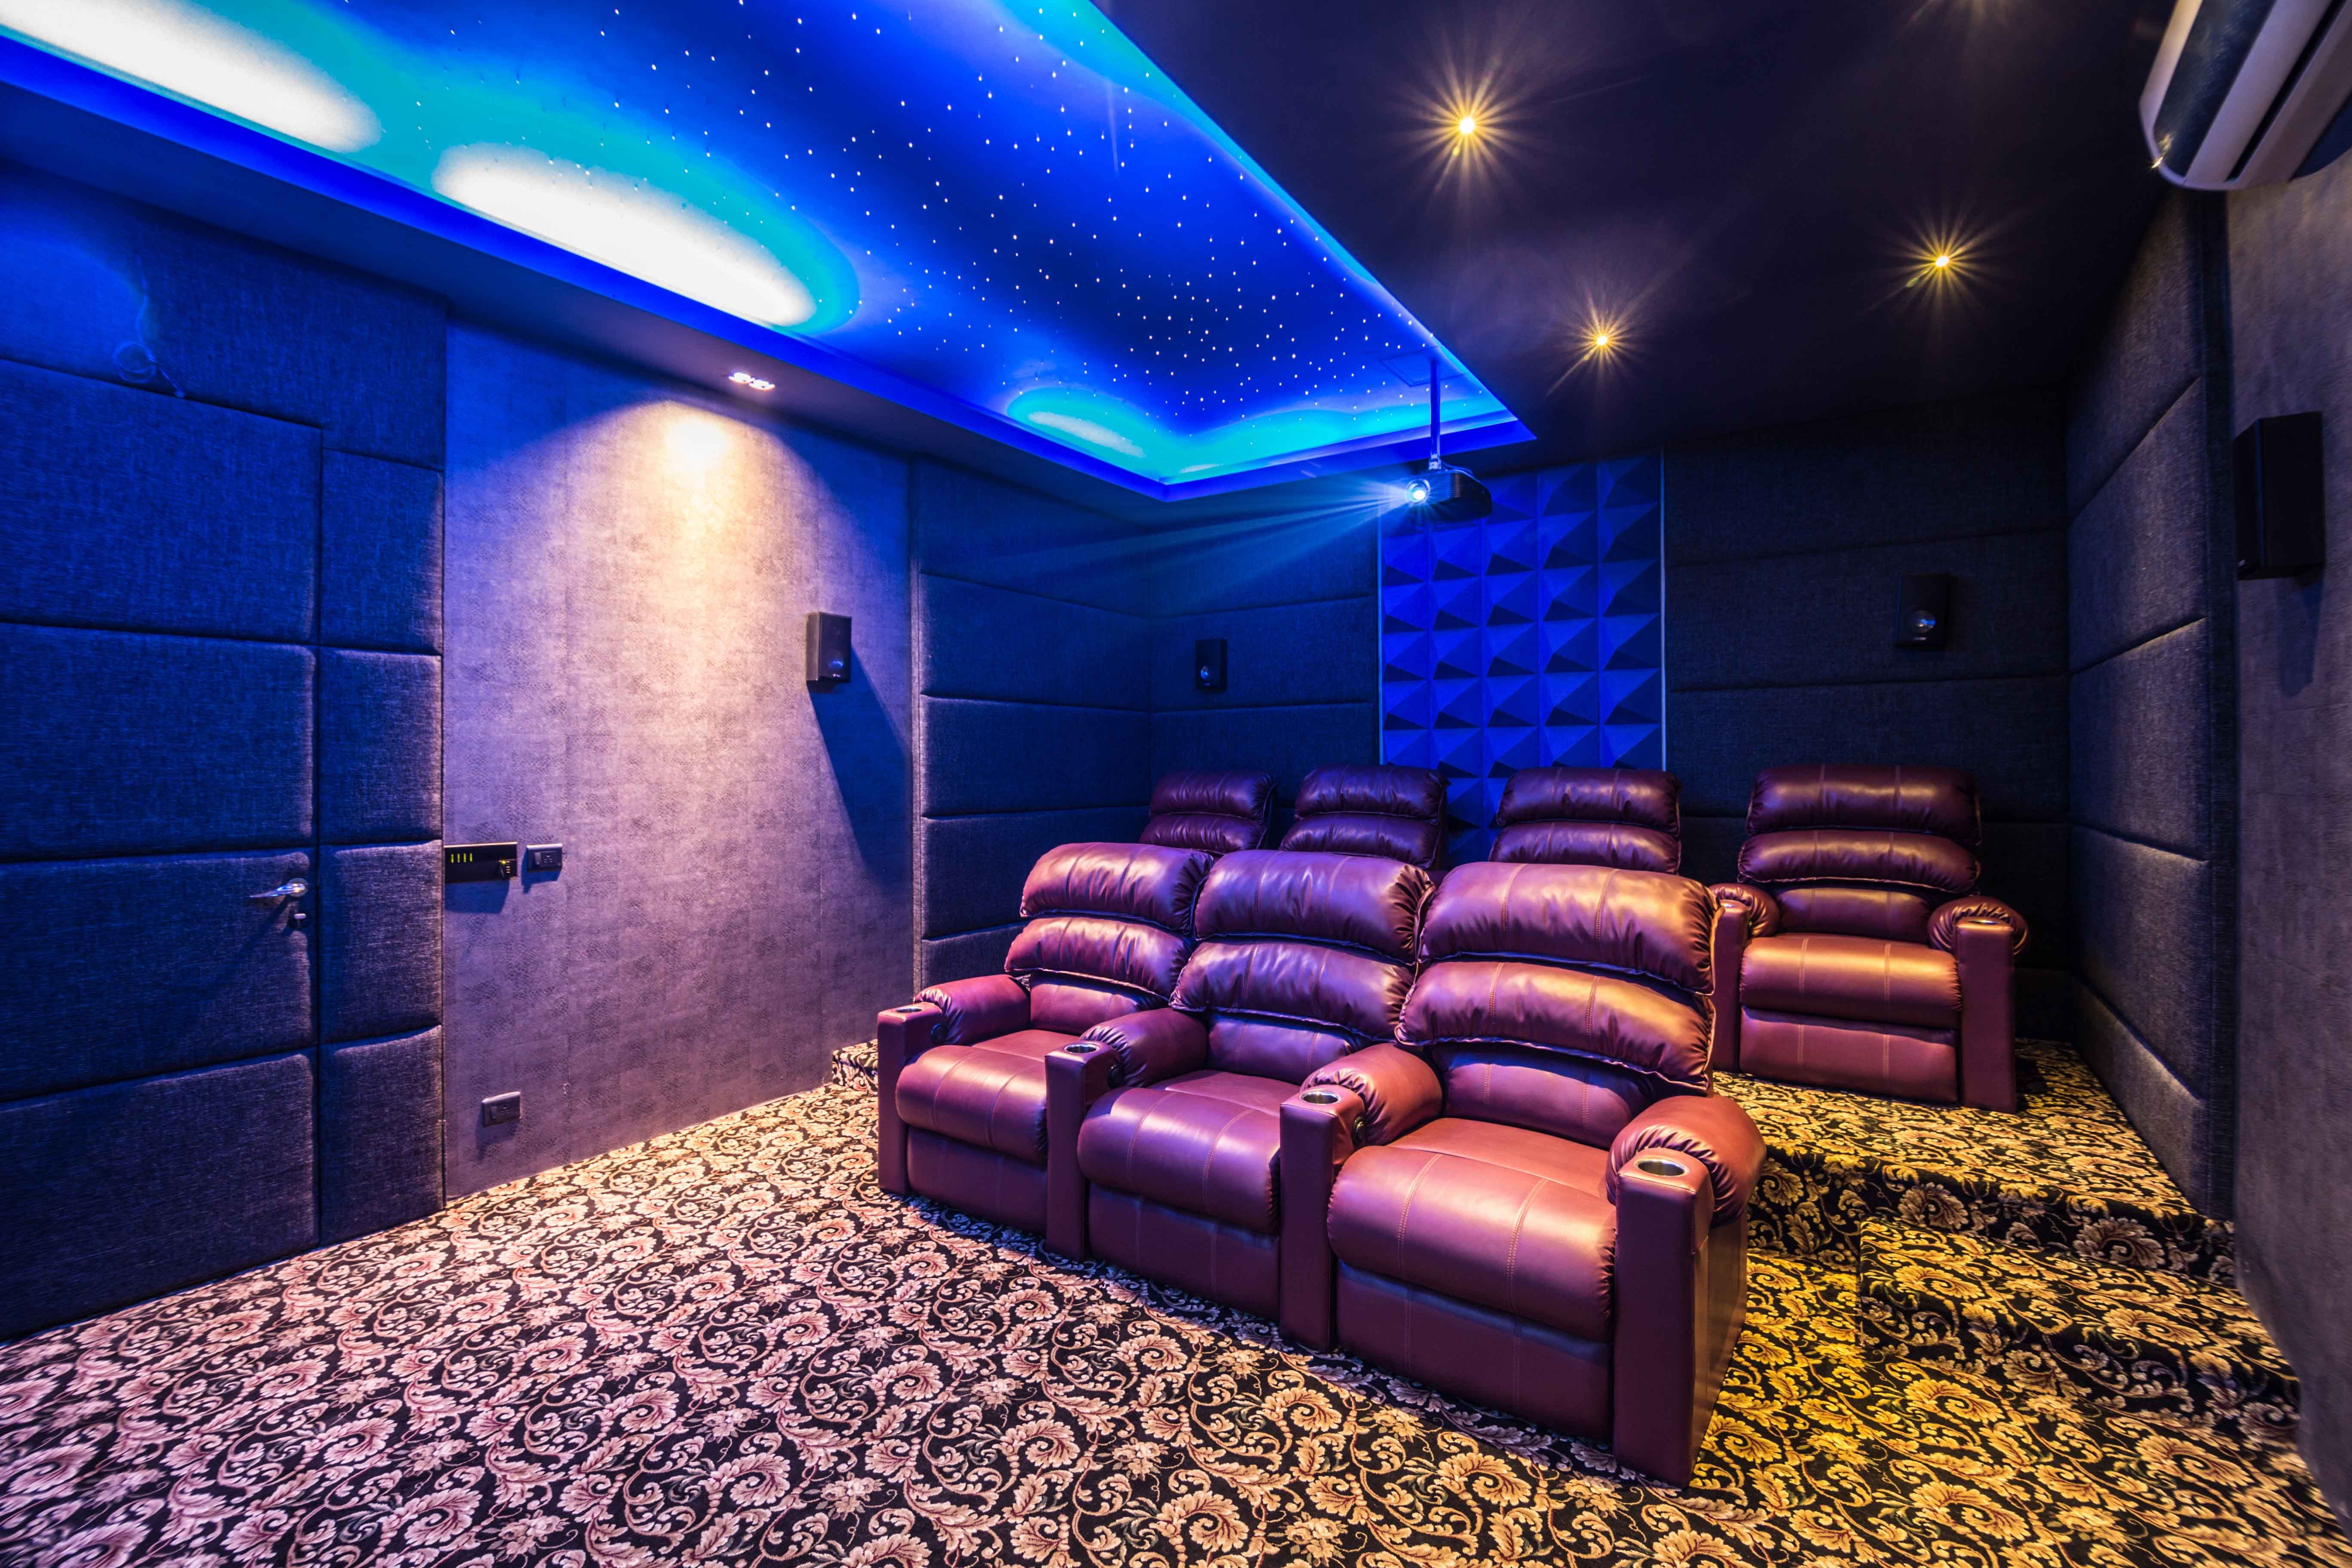 All About Forms Homes Home Theatre Interior Decoration Ideas Theatre Interior Interior Decorating Interior Design Photos